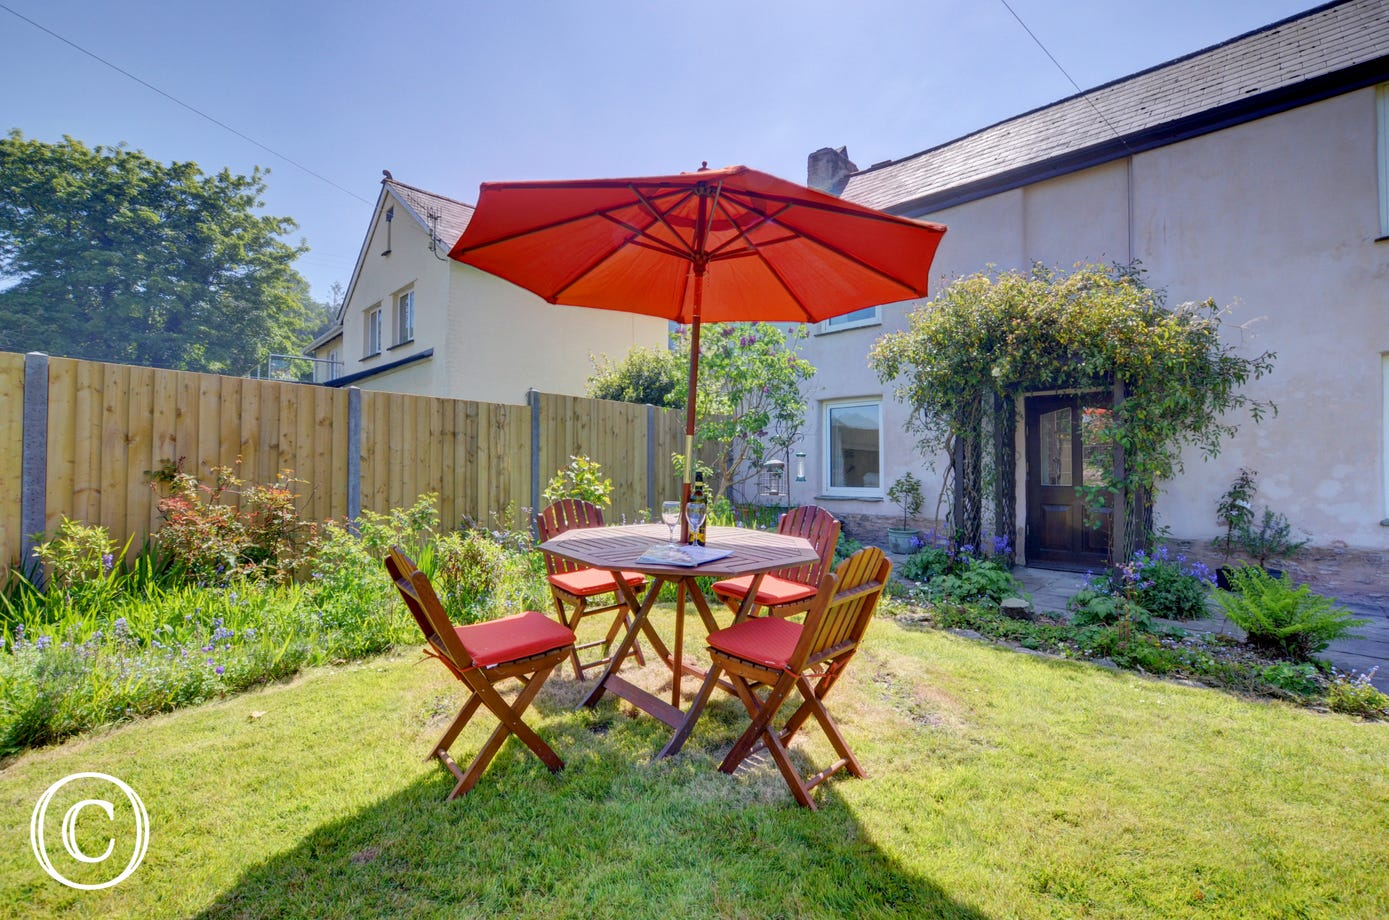 A barbecue is provided so 'al fresco' meals may well feature during your holiday